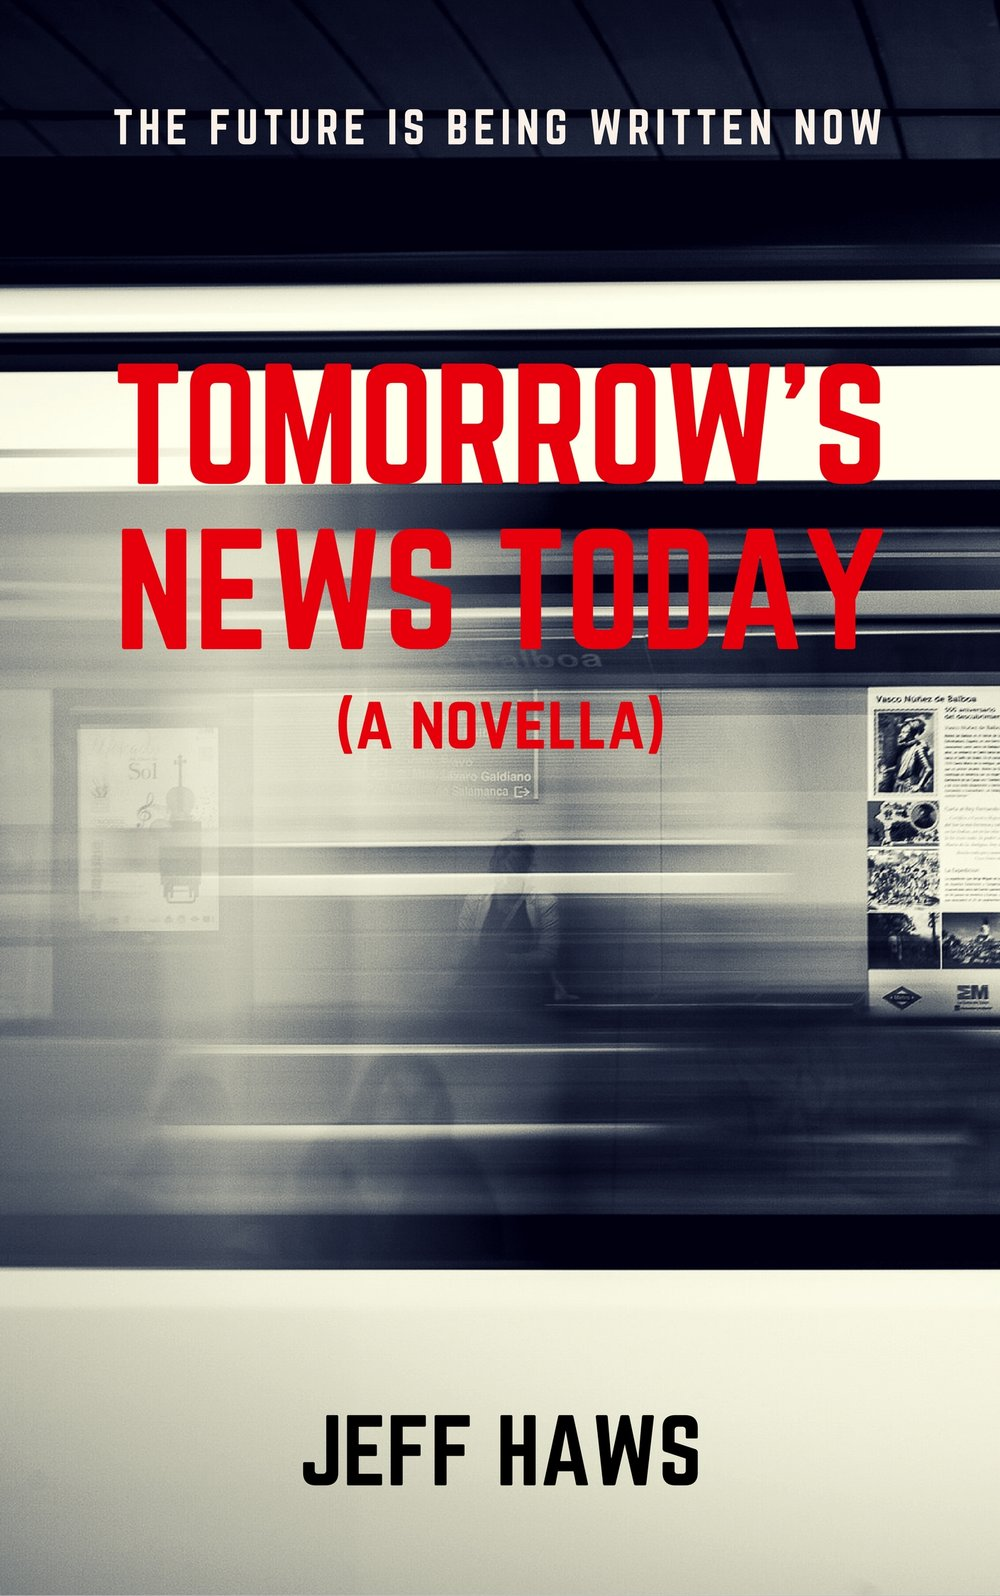 Tomorrow's News Today by Jeff Haws | Interview with Author Jeff Haws on the ellensmithwrites.com blog